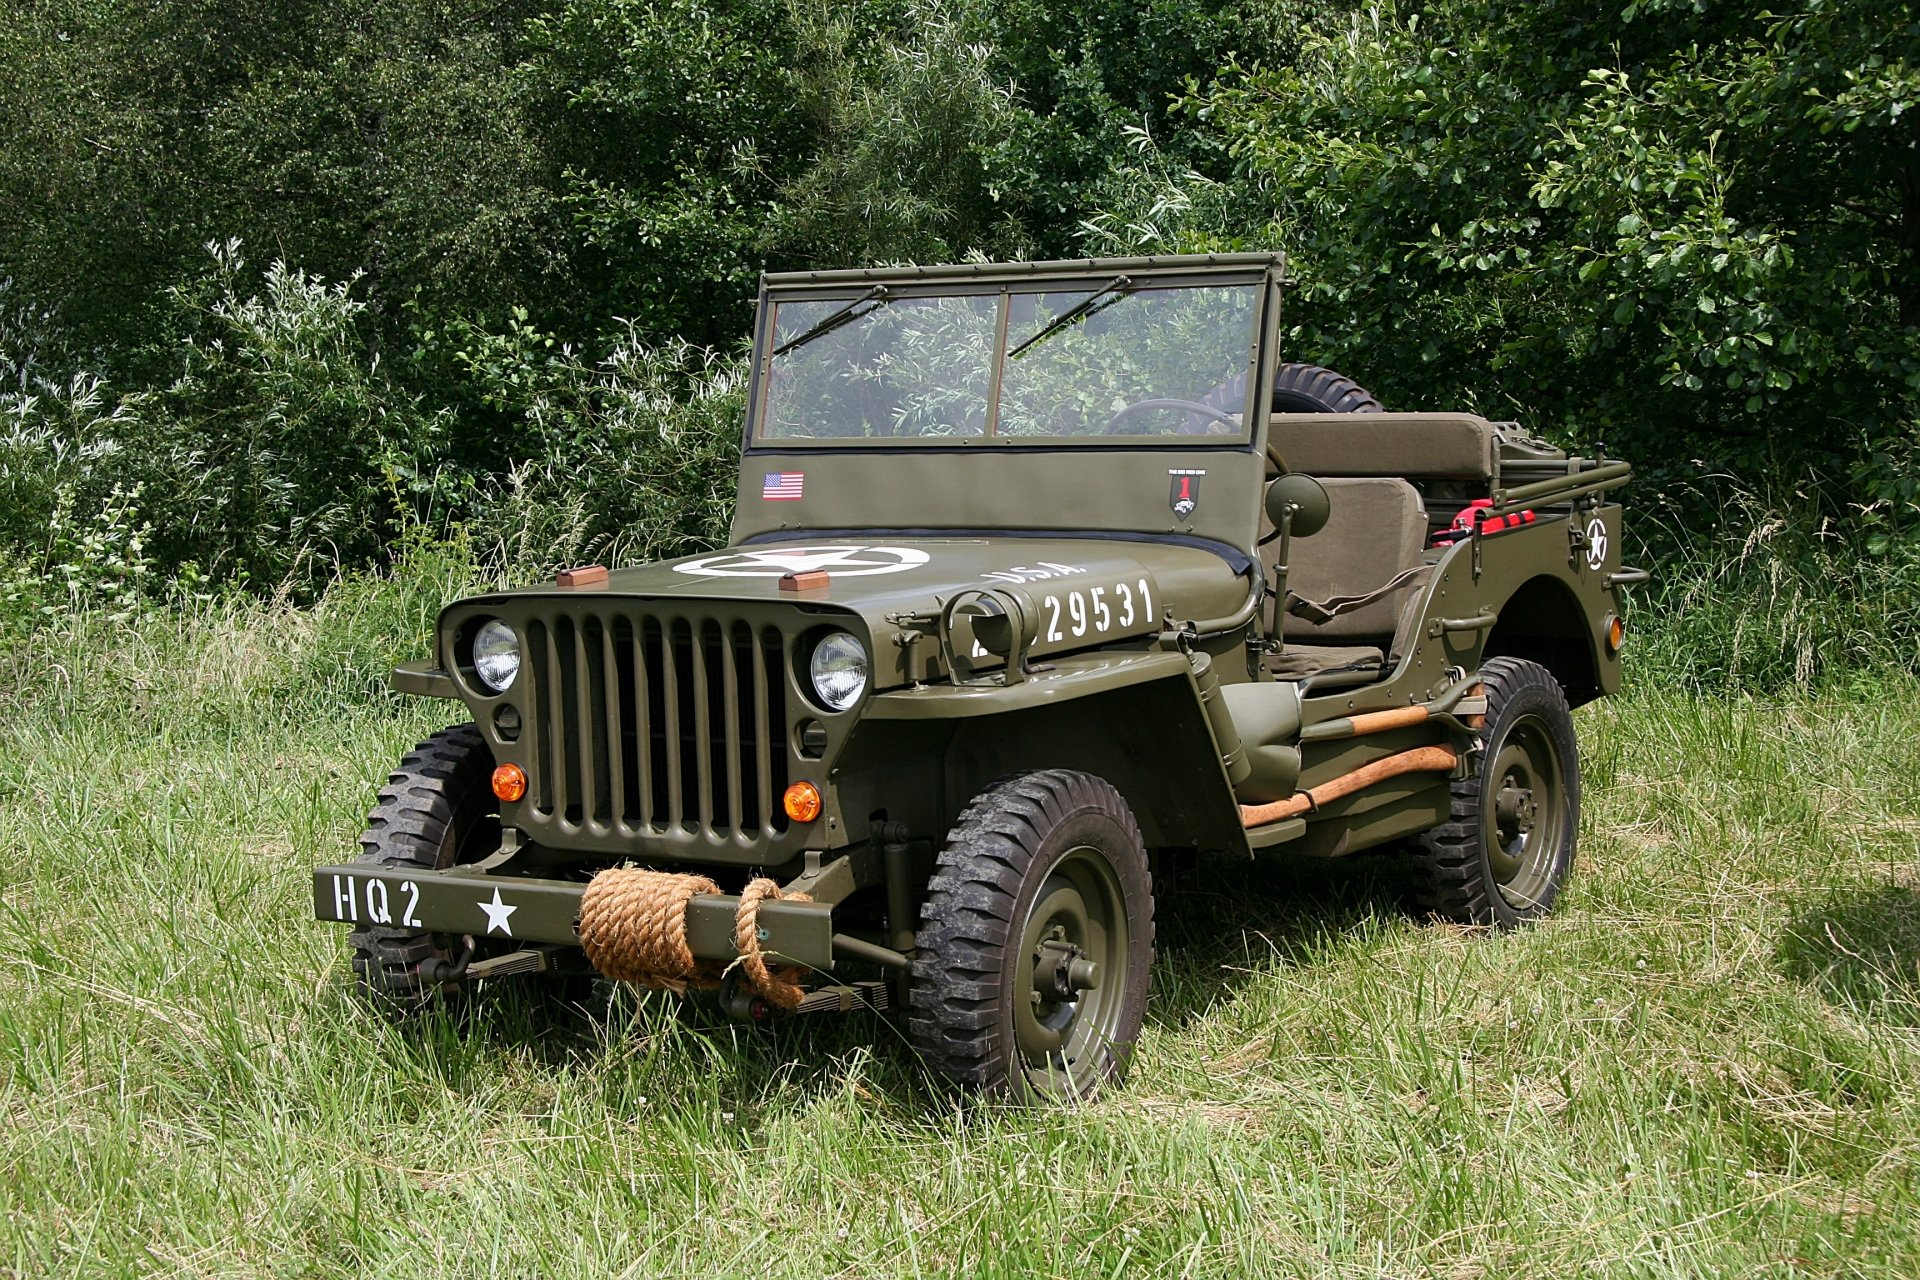 146 Jeep Hd Wallpapers Background Images Wallpaper Abyss